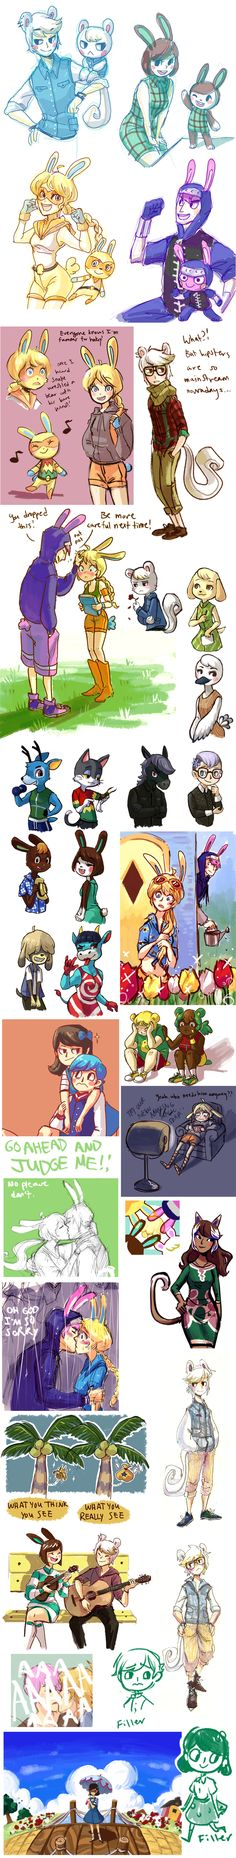 talking animal soap opera by Timidemerald.deviantart.com on @deviantART (Animal Crossing)